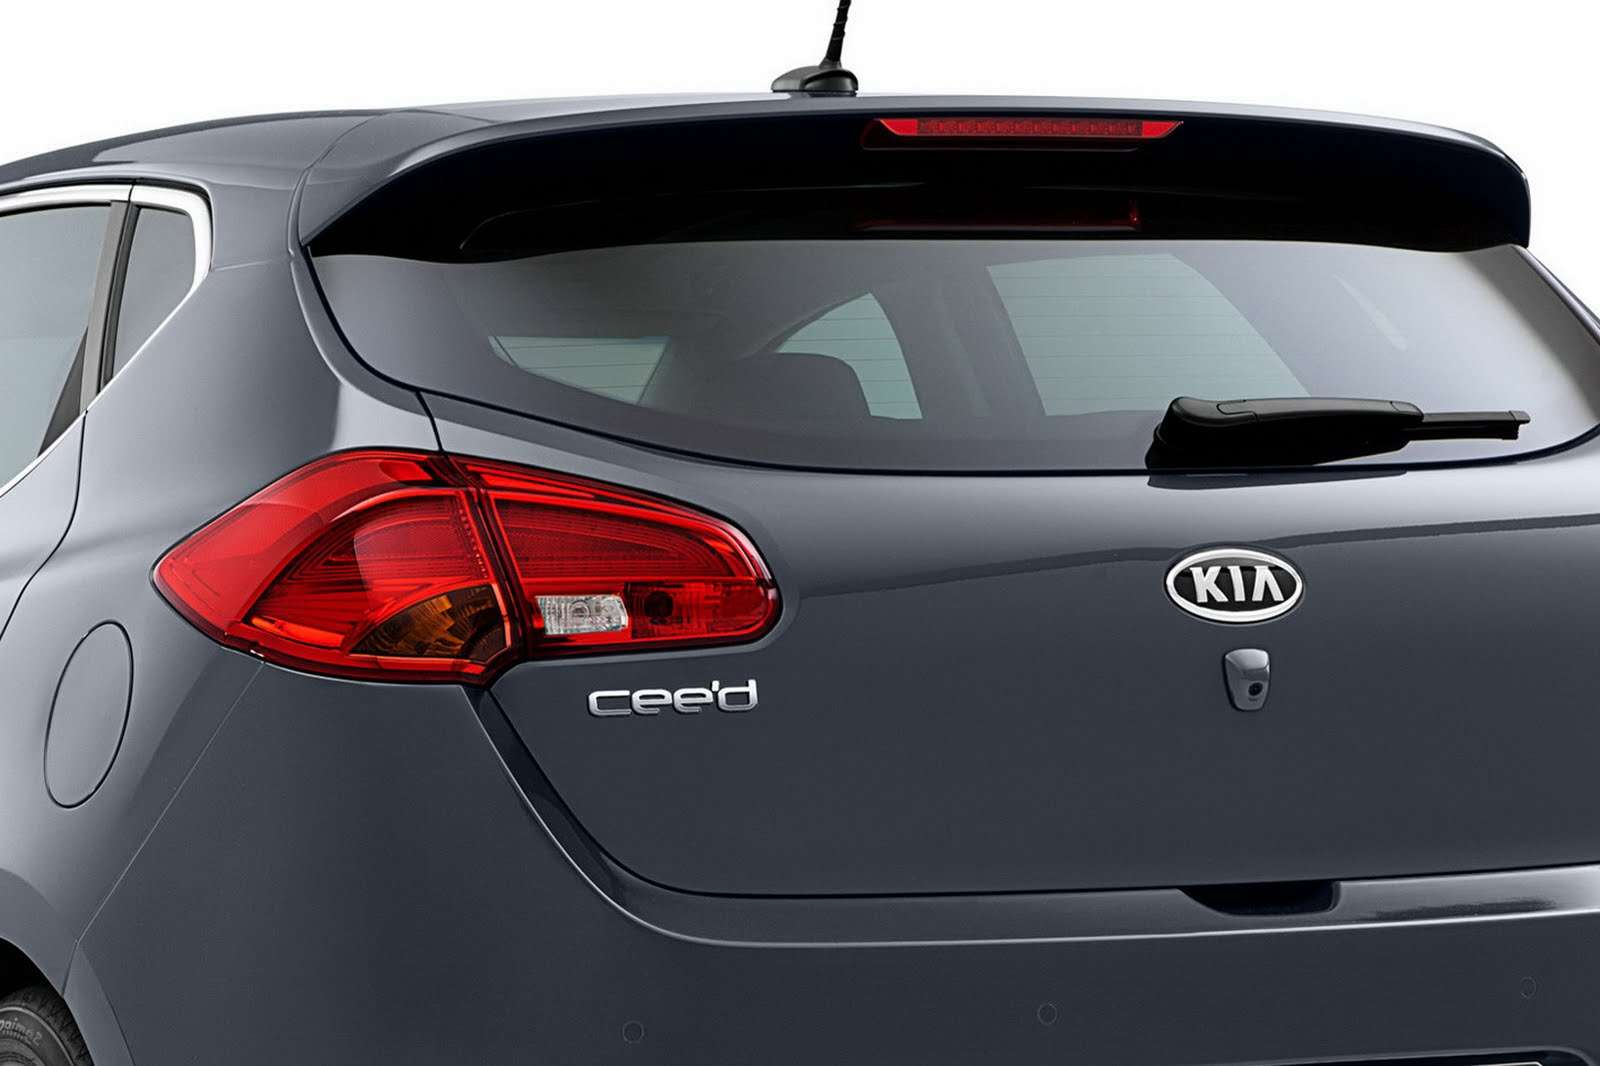 Kia ceed 2012 new photo plus tyl styczen 2012